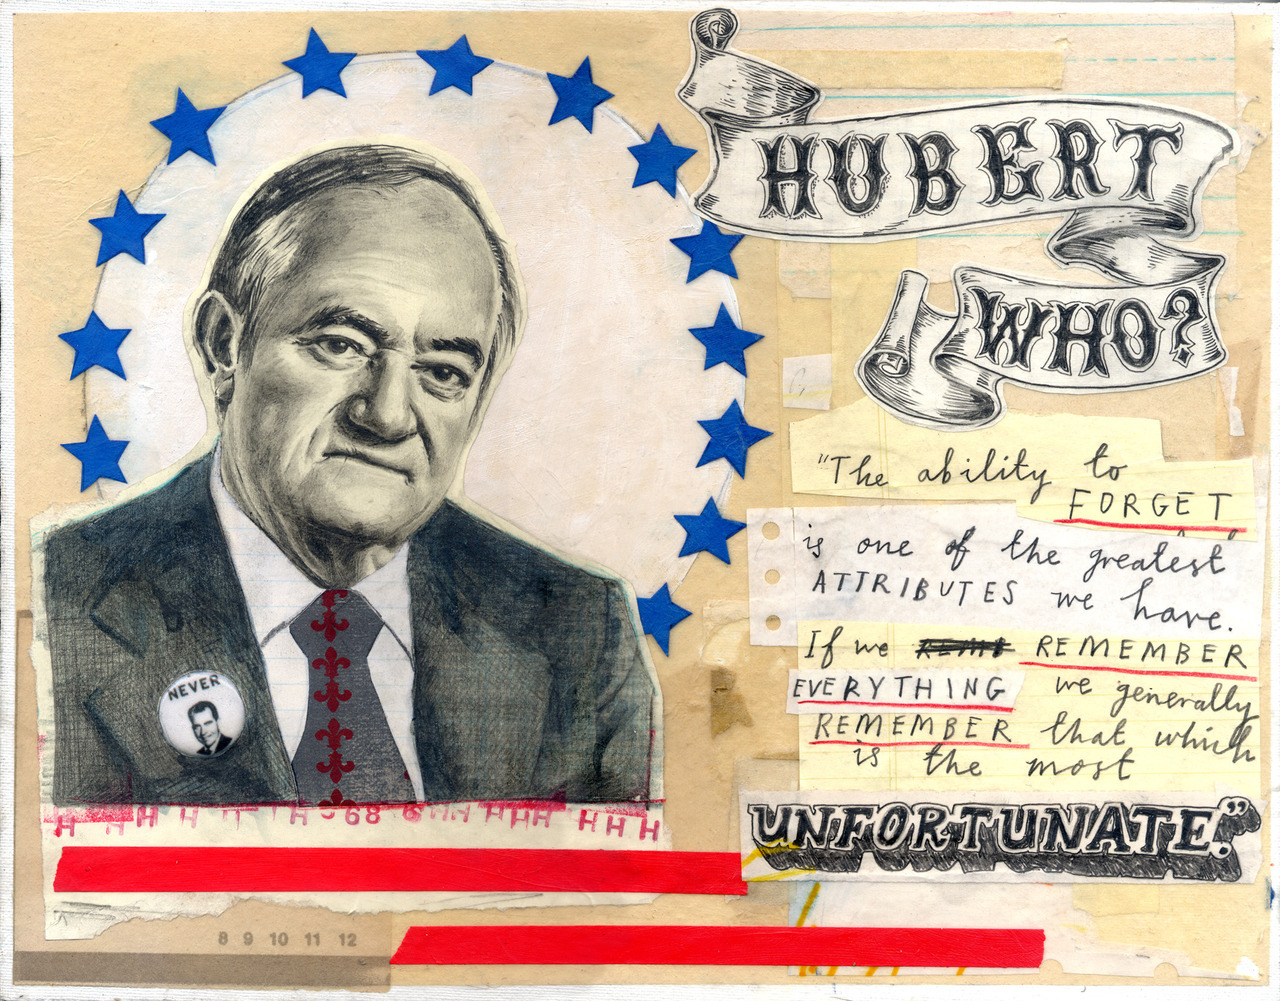 """This portrait of Hubert H Humphrey is now appearing at the Salvage Vanguard Theater Gallery in Austin, Texas as part of the  'Presidential Losers'exhibition .      The  show opened this weekend  and is being held in conjunction with   Gnap! Theatre Projects  upcoming 44 Plays for 44 Presidents stage production which will be opening at the Theatre on October 5th. It  features 75 portraits, one of  every contender who ever lost the U.S. Presidential Election.      My contribution,  Hubert H. Humphrey  lost the the 1968 election to that that delightful character Richard Nixon. Humphrey was also Lyndon Johnson's VP, and """"Hubert who?"""" was allegedlyJohnson'sresponse when, because hewas unable to attend Winston Churchill's funeral, an advisor suggested he send Hubert along as his representative. Humphrey did not attend the funeral. The other quote is from HHH himself, and seemed appropriate considering the forgettable outcome of his Presidential ambitions."""